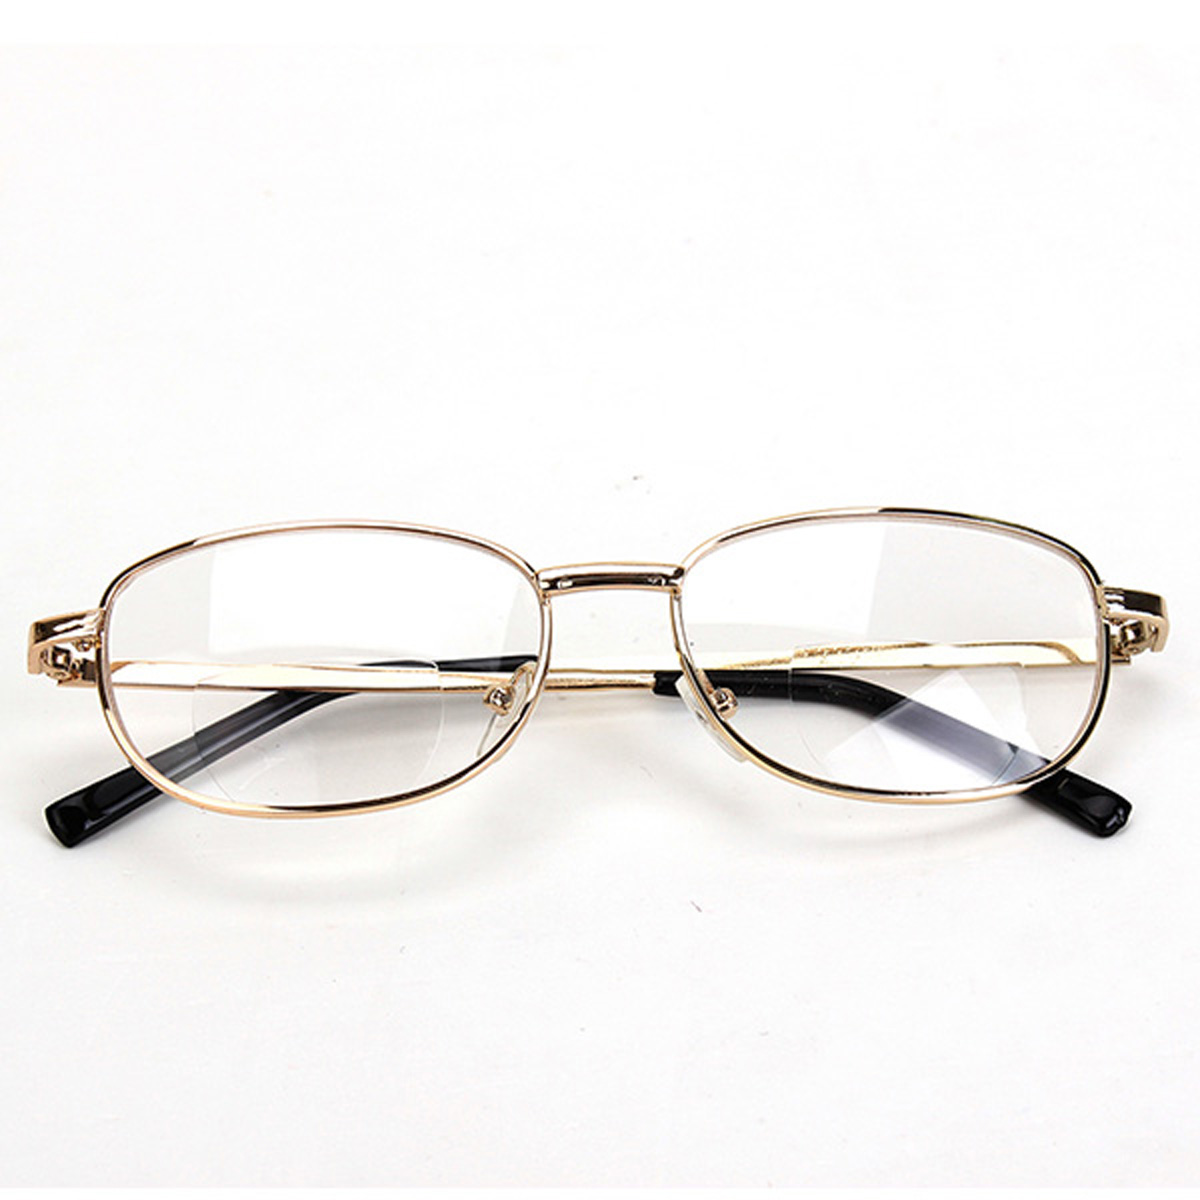 fashion bifocal lens rimmed mens reading glasses gold metal frame eyeglasses